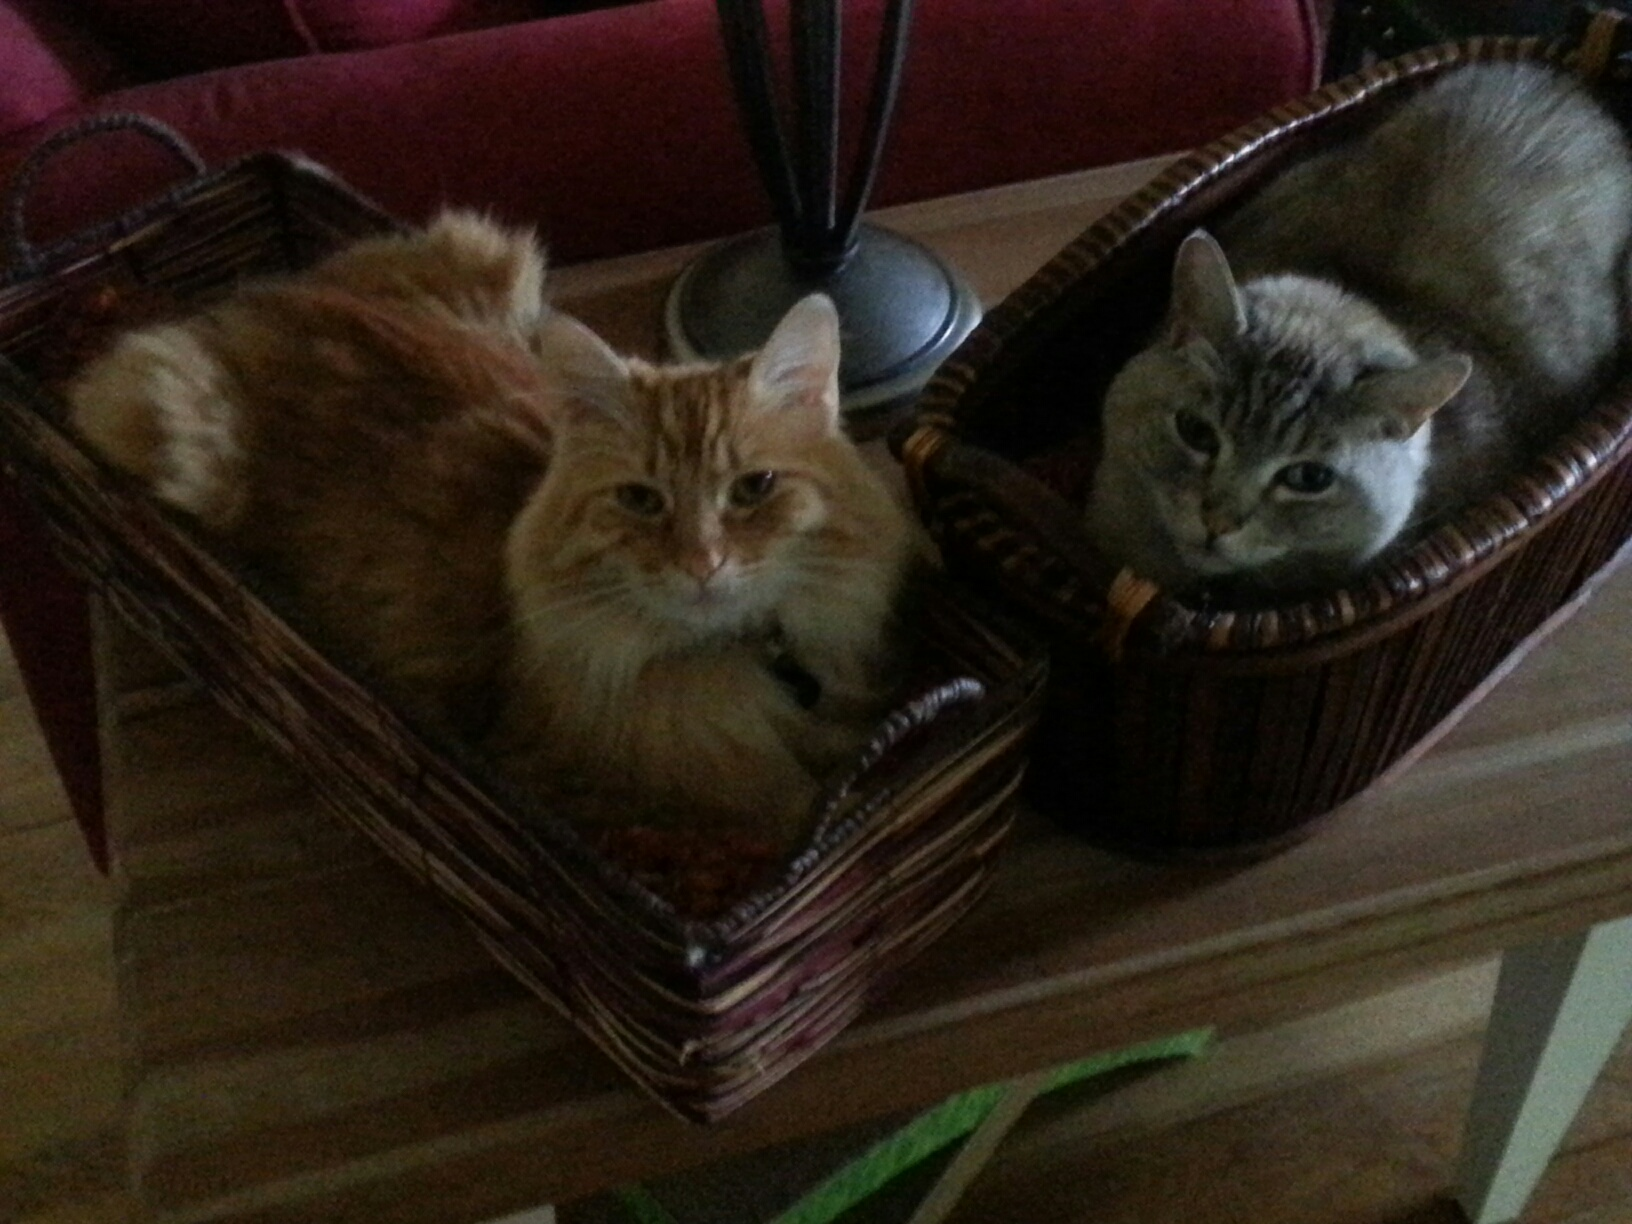 Cats in baskets 1.jpg